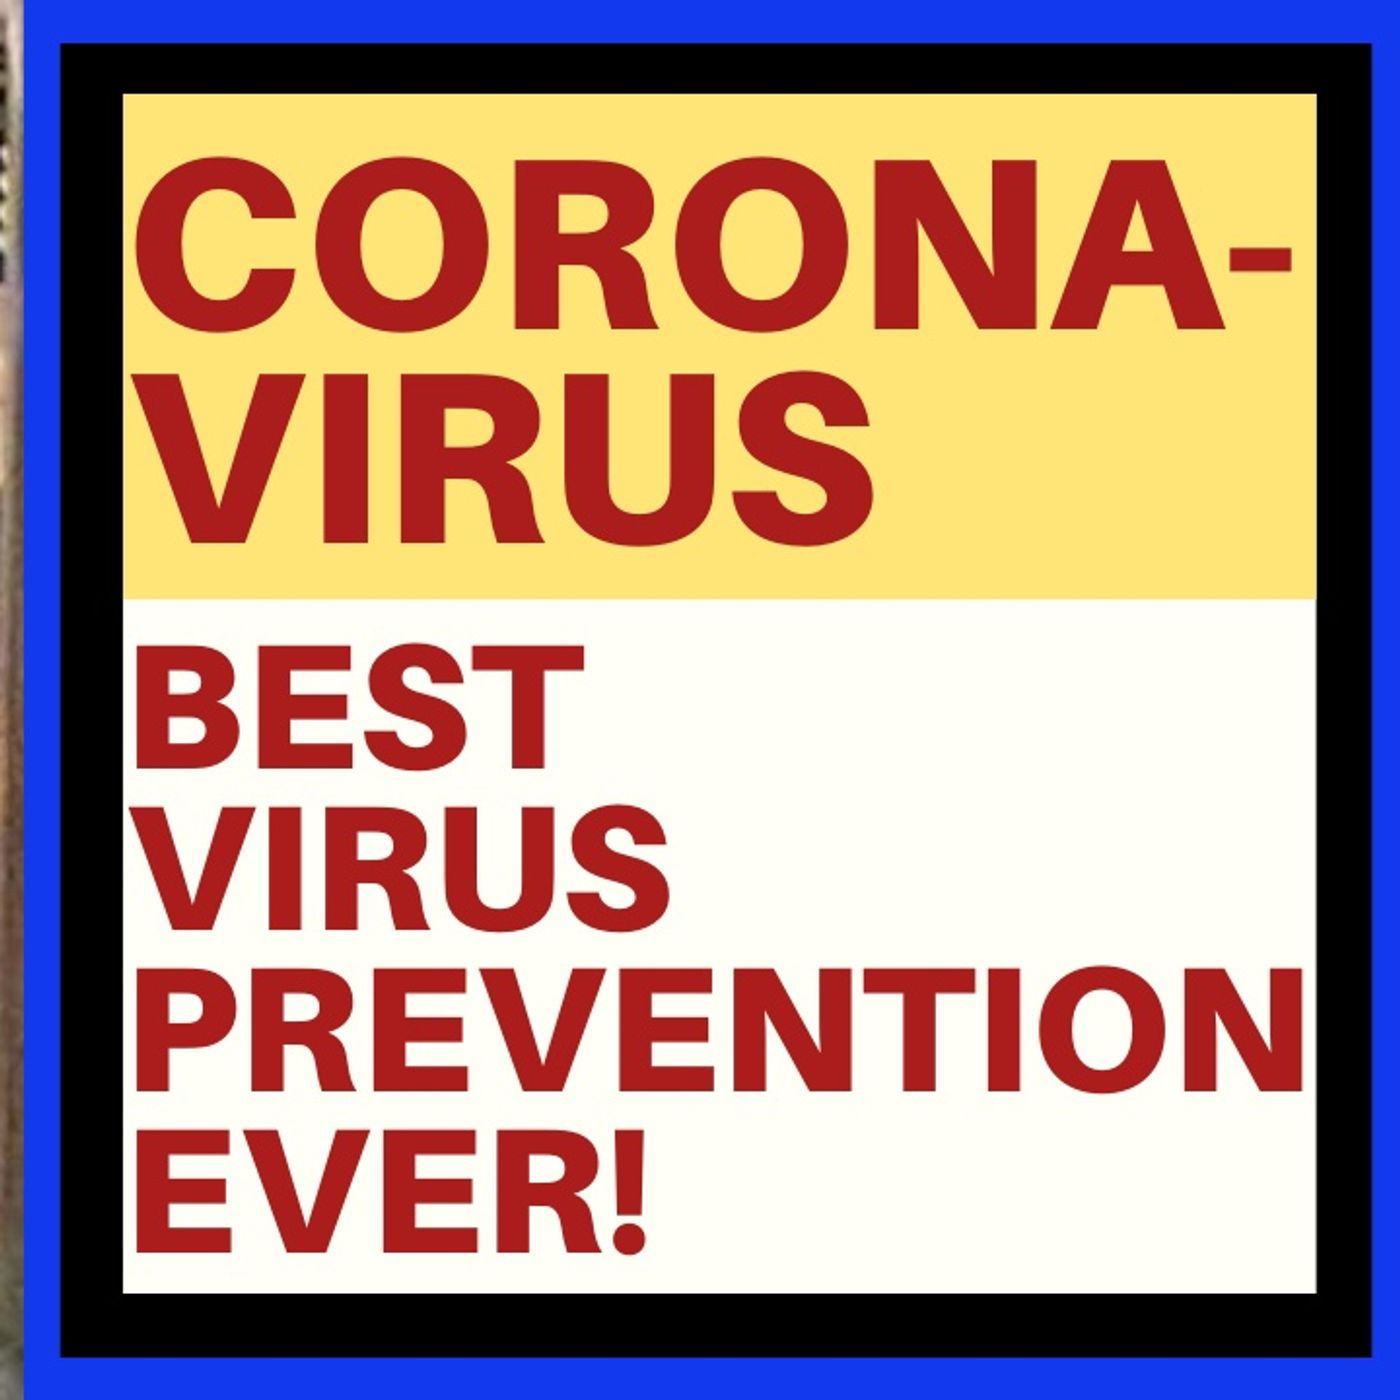 FIGHT CORONAVIRUS BY PUTTING A WATER JUG ON YOUR HEAD